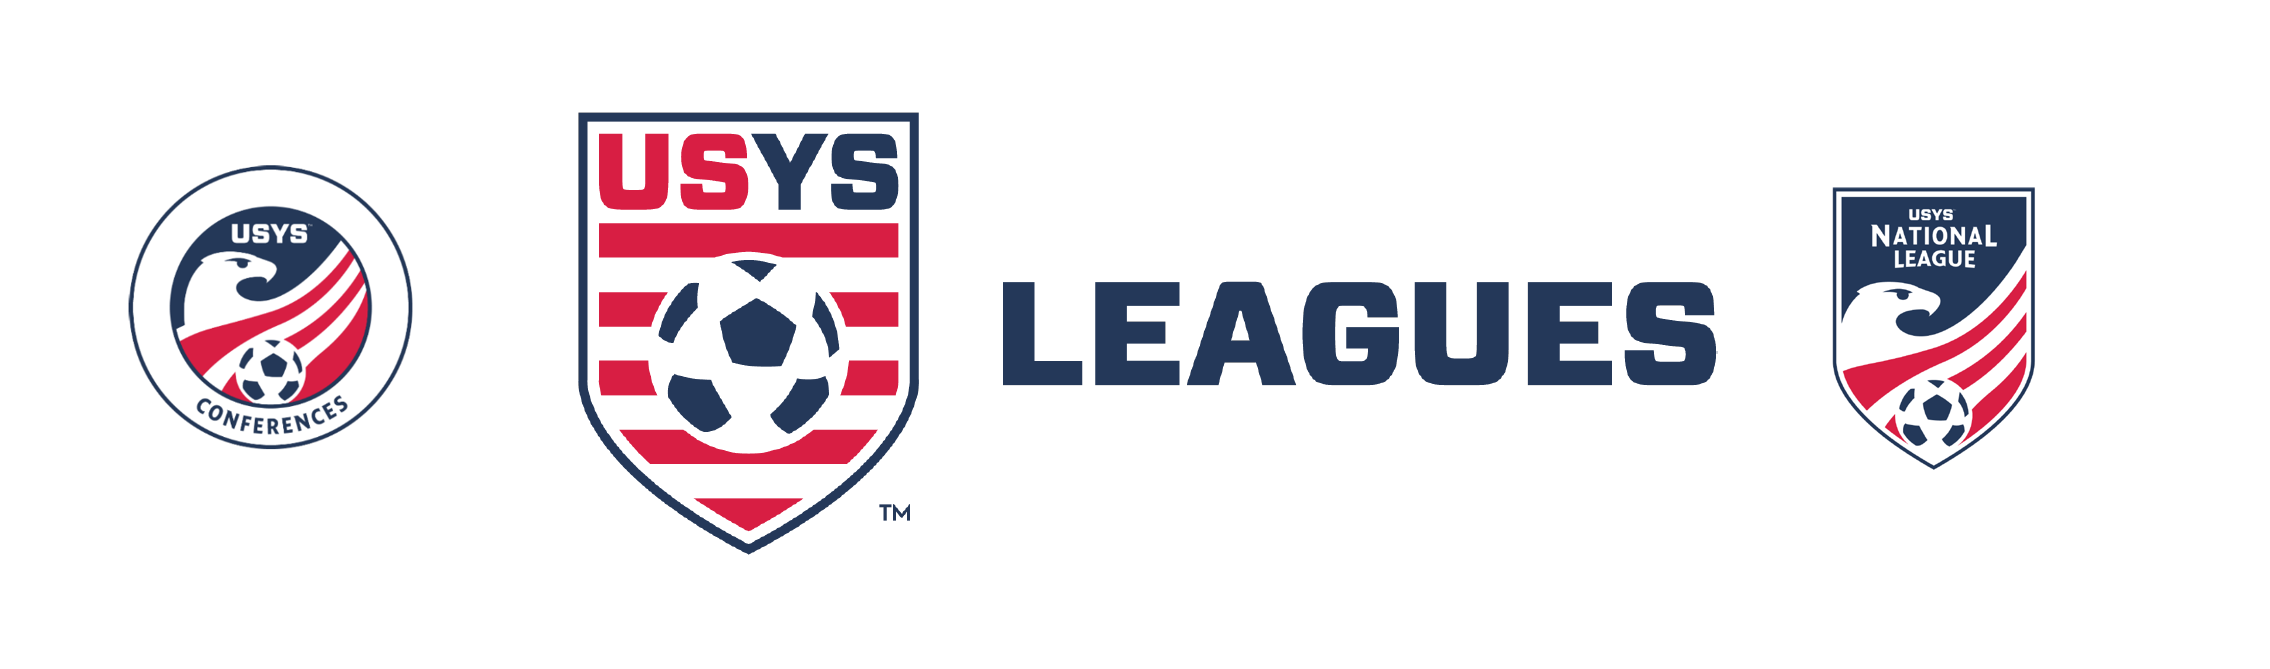 USYS Leagues Overview: Explaining the US Youth Soccer National League and Conferences